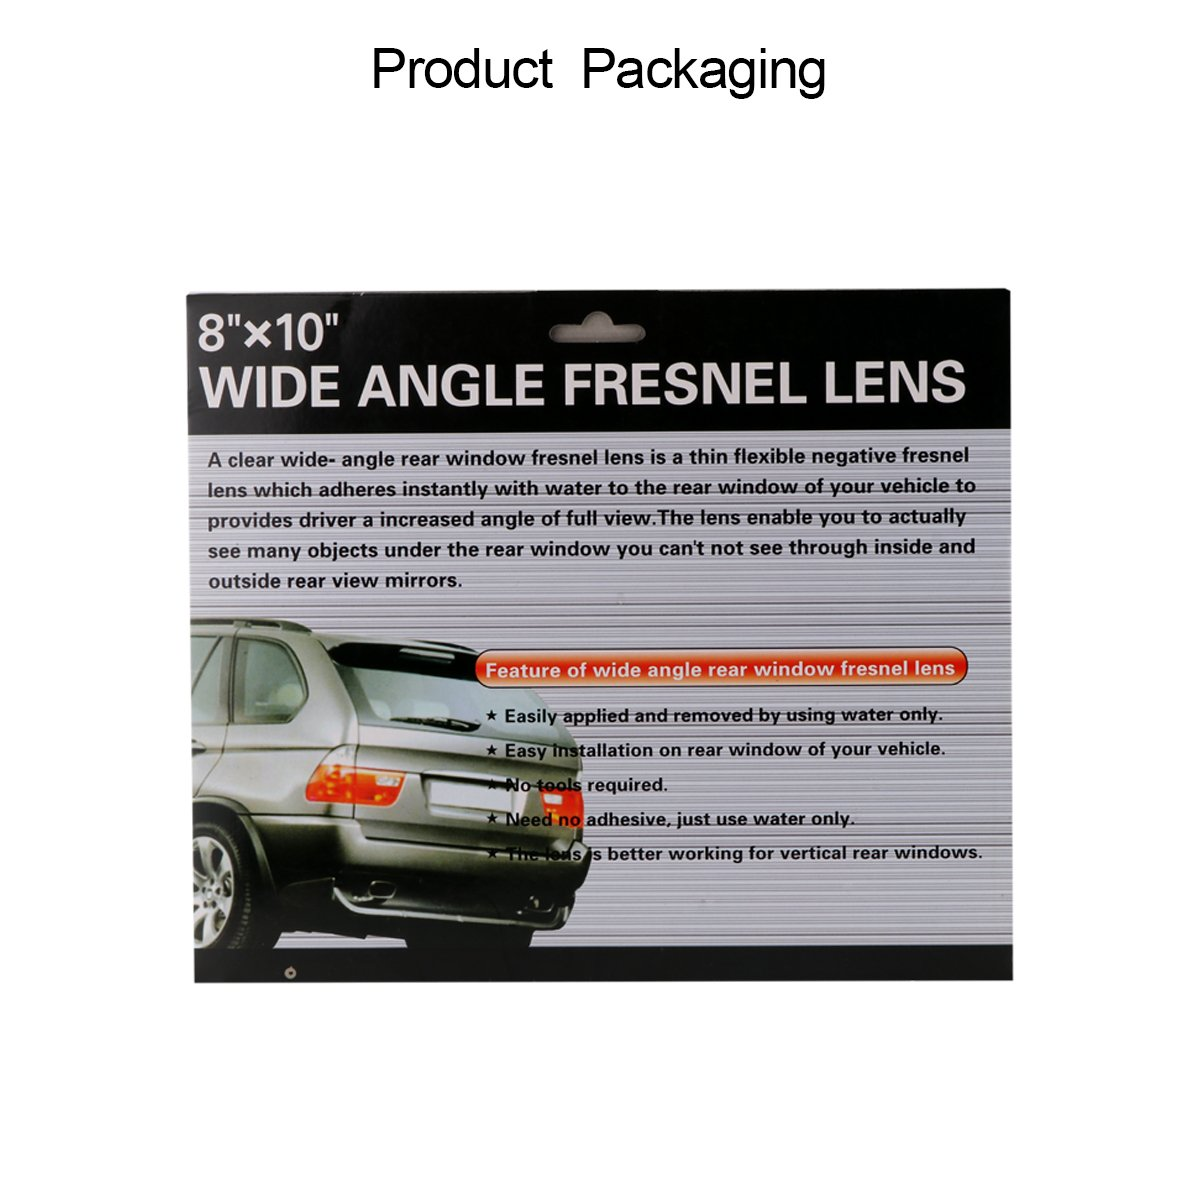 ONEVER 8*10 Wide Angle Auto Fresnel Lens Parking Blind Spot Rear View Lens Reversing Sticker for Car Van SUV